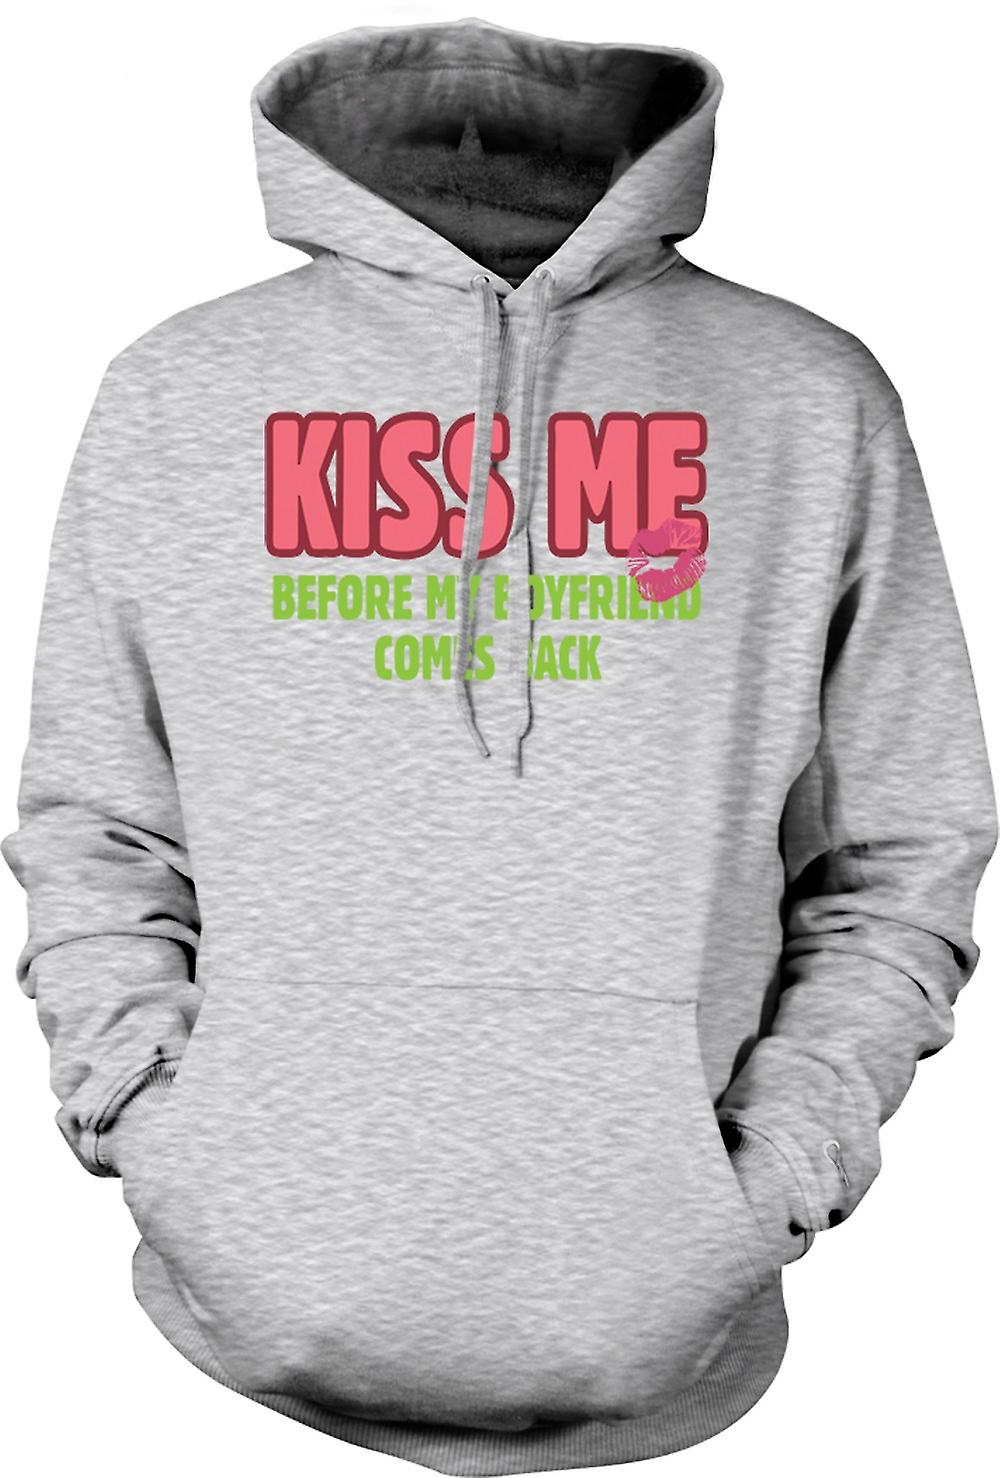 Mens Hoodie - Kiss Me Before My Boyfriend Comes Back - Funny